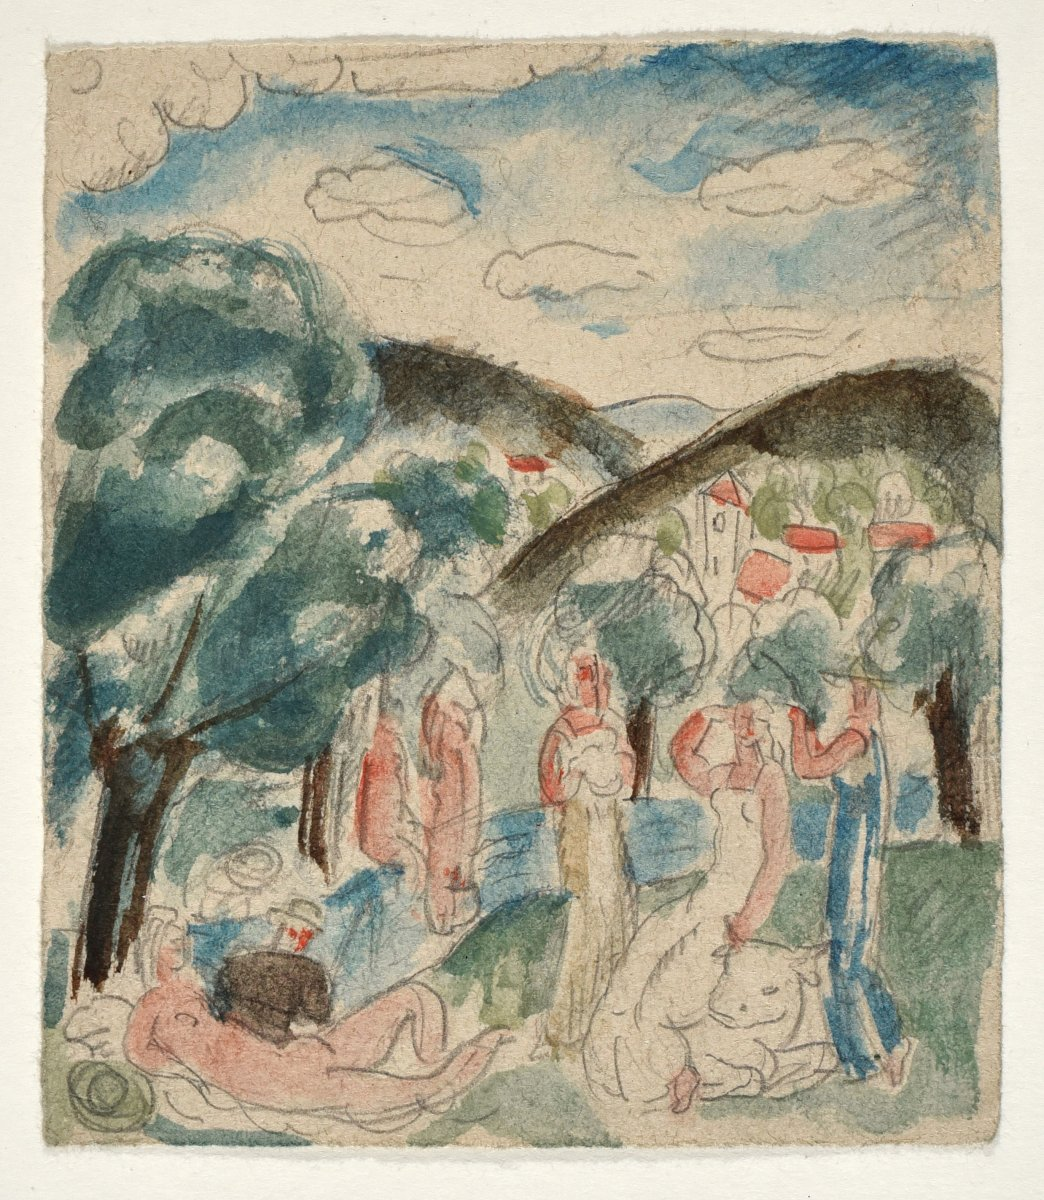 Gilbert Poillerat (1902-1988), Nudes In A Landscape (kidnapping From Europe)